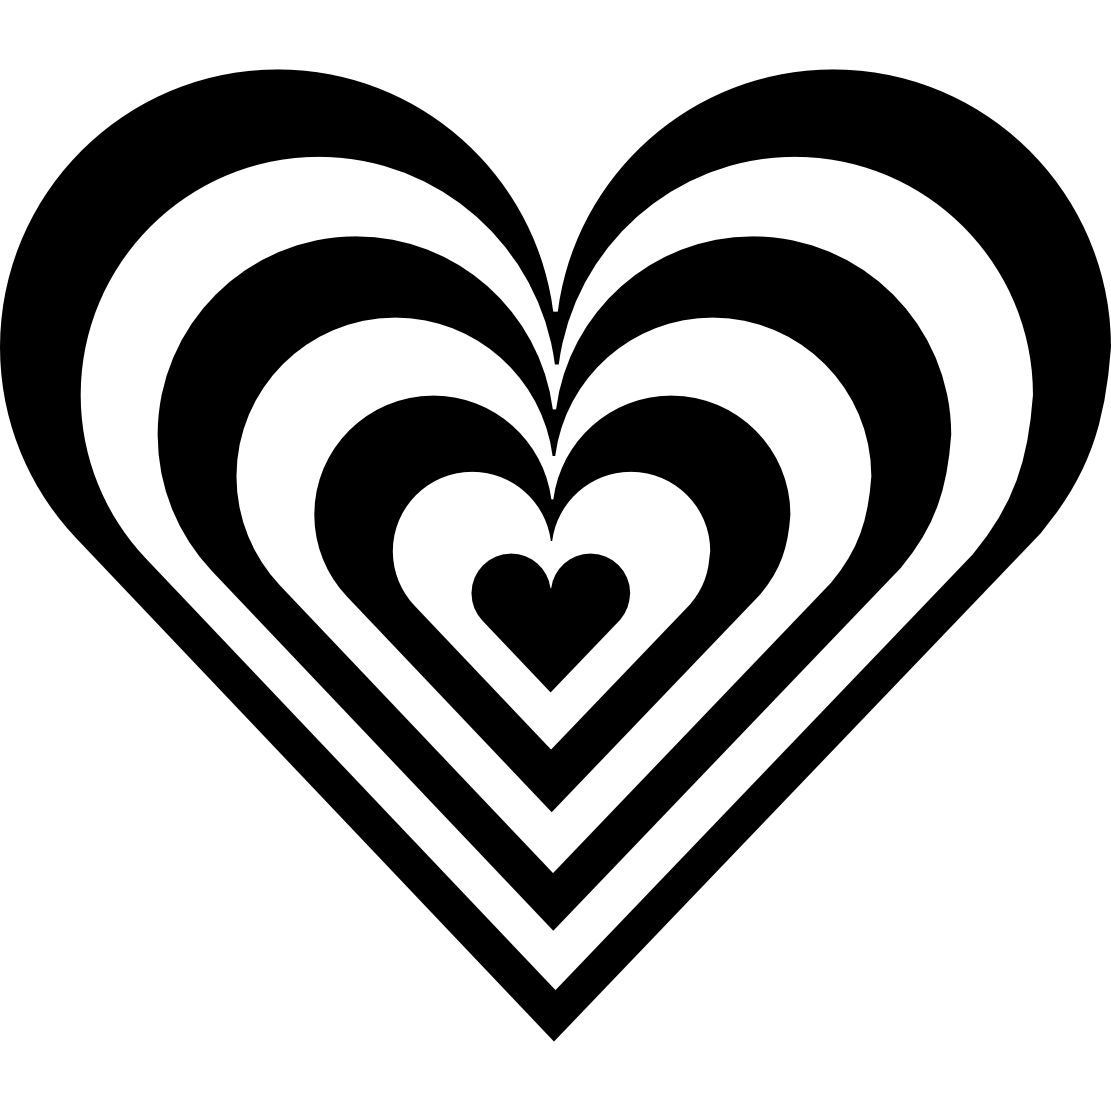 heart border clipart black and white clipart library #14320